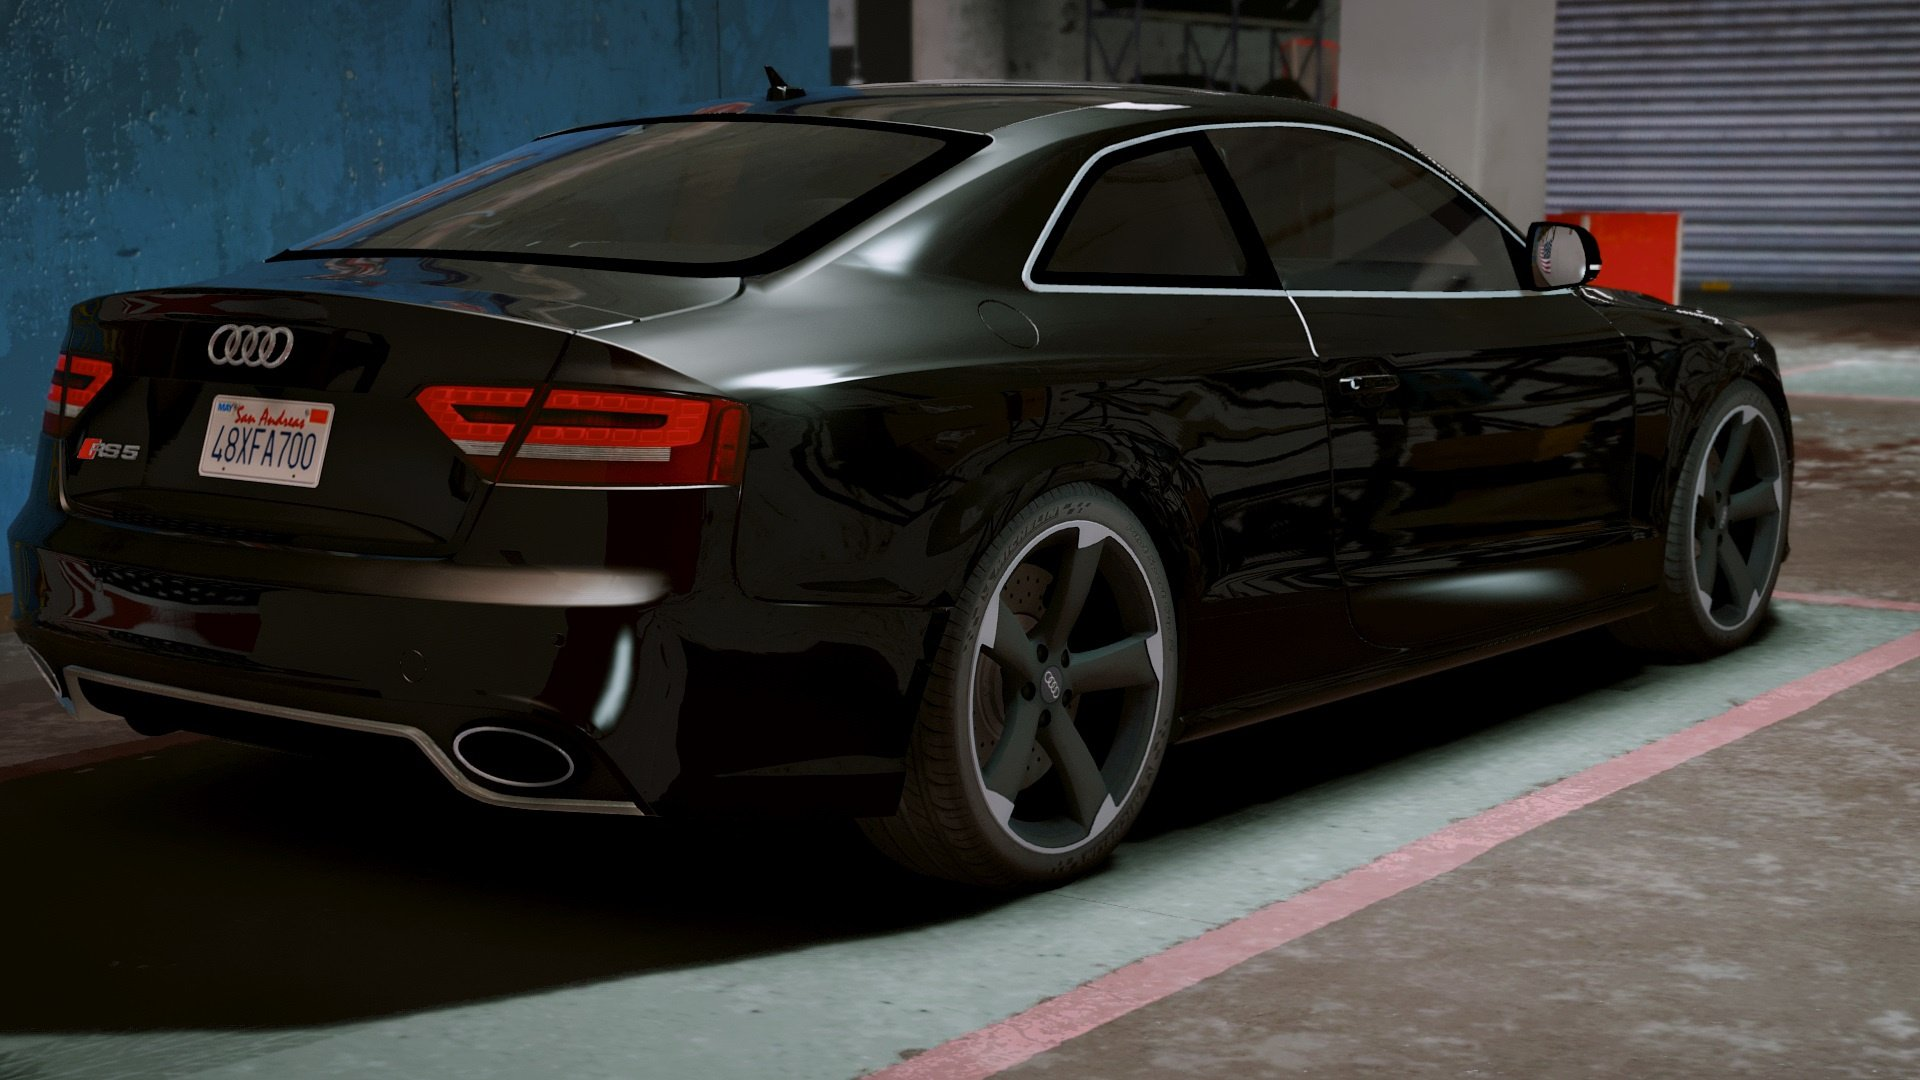 Audi Rs5 2011 Add On Replace Tuning Gta5 Mods Com